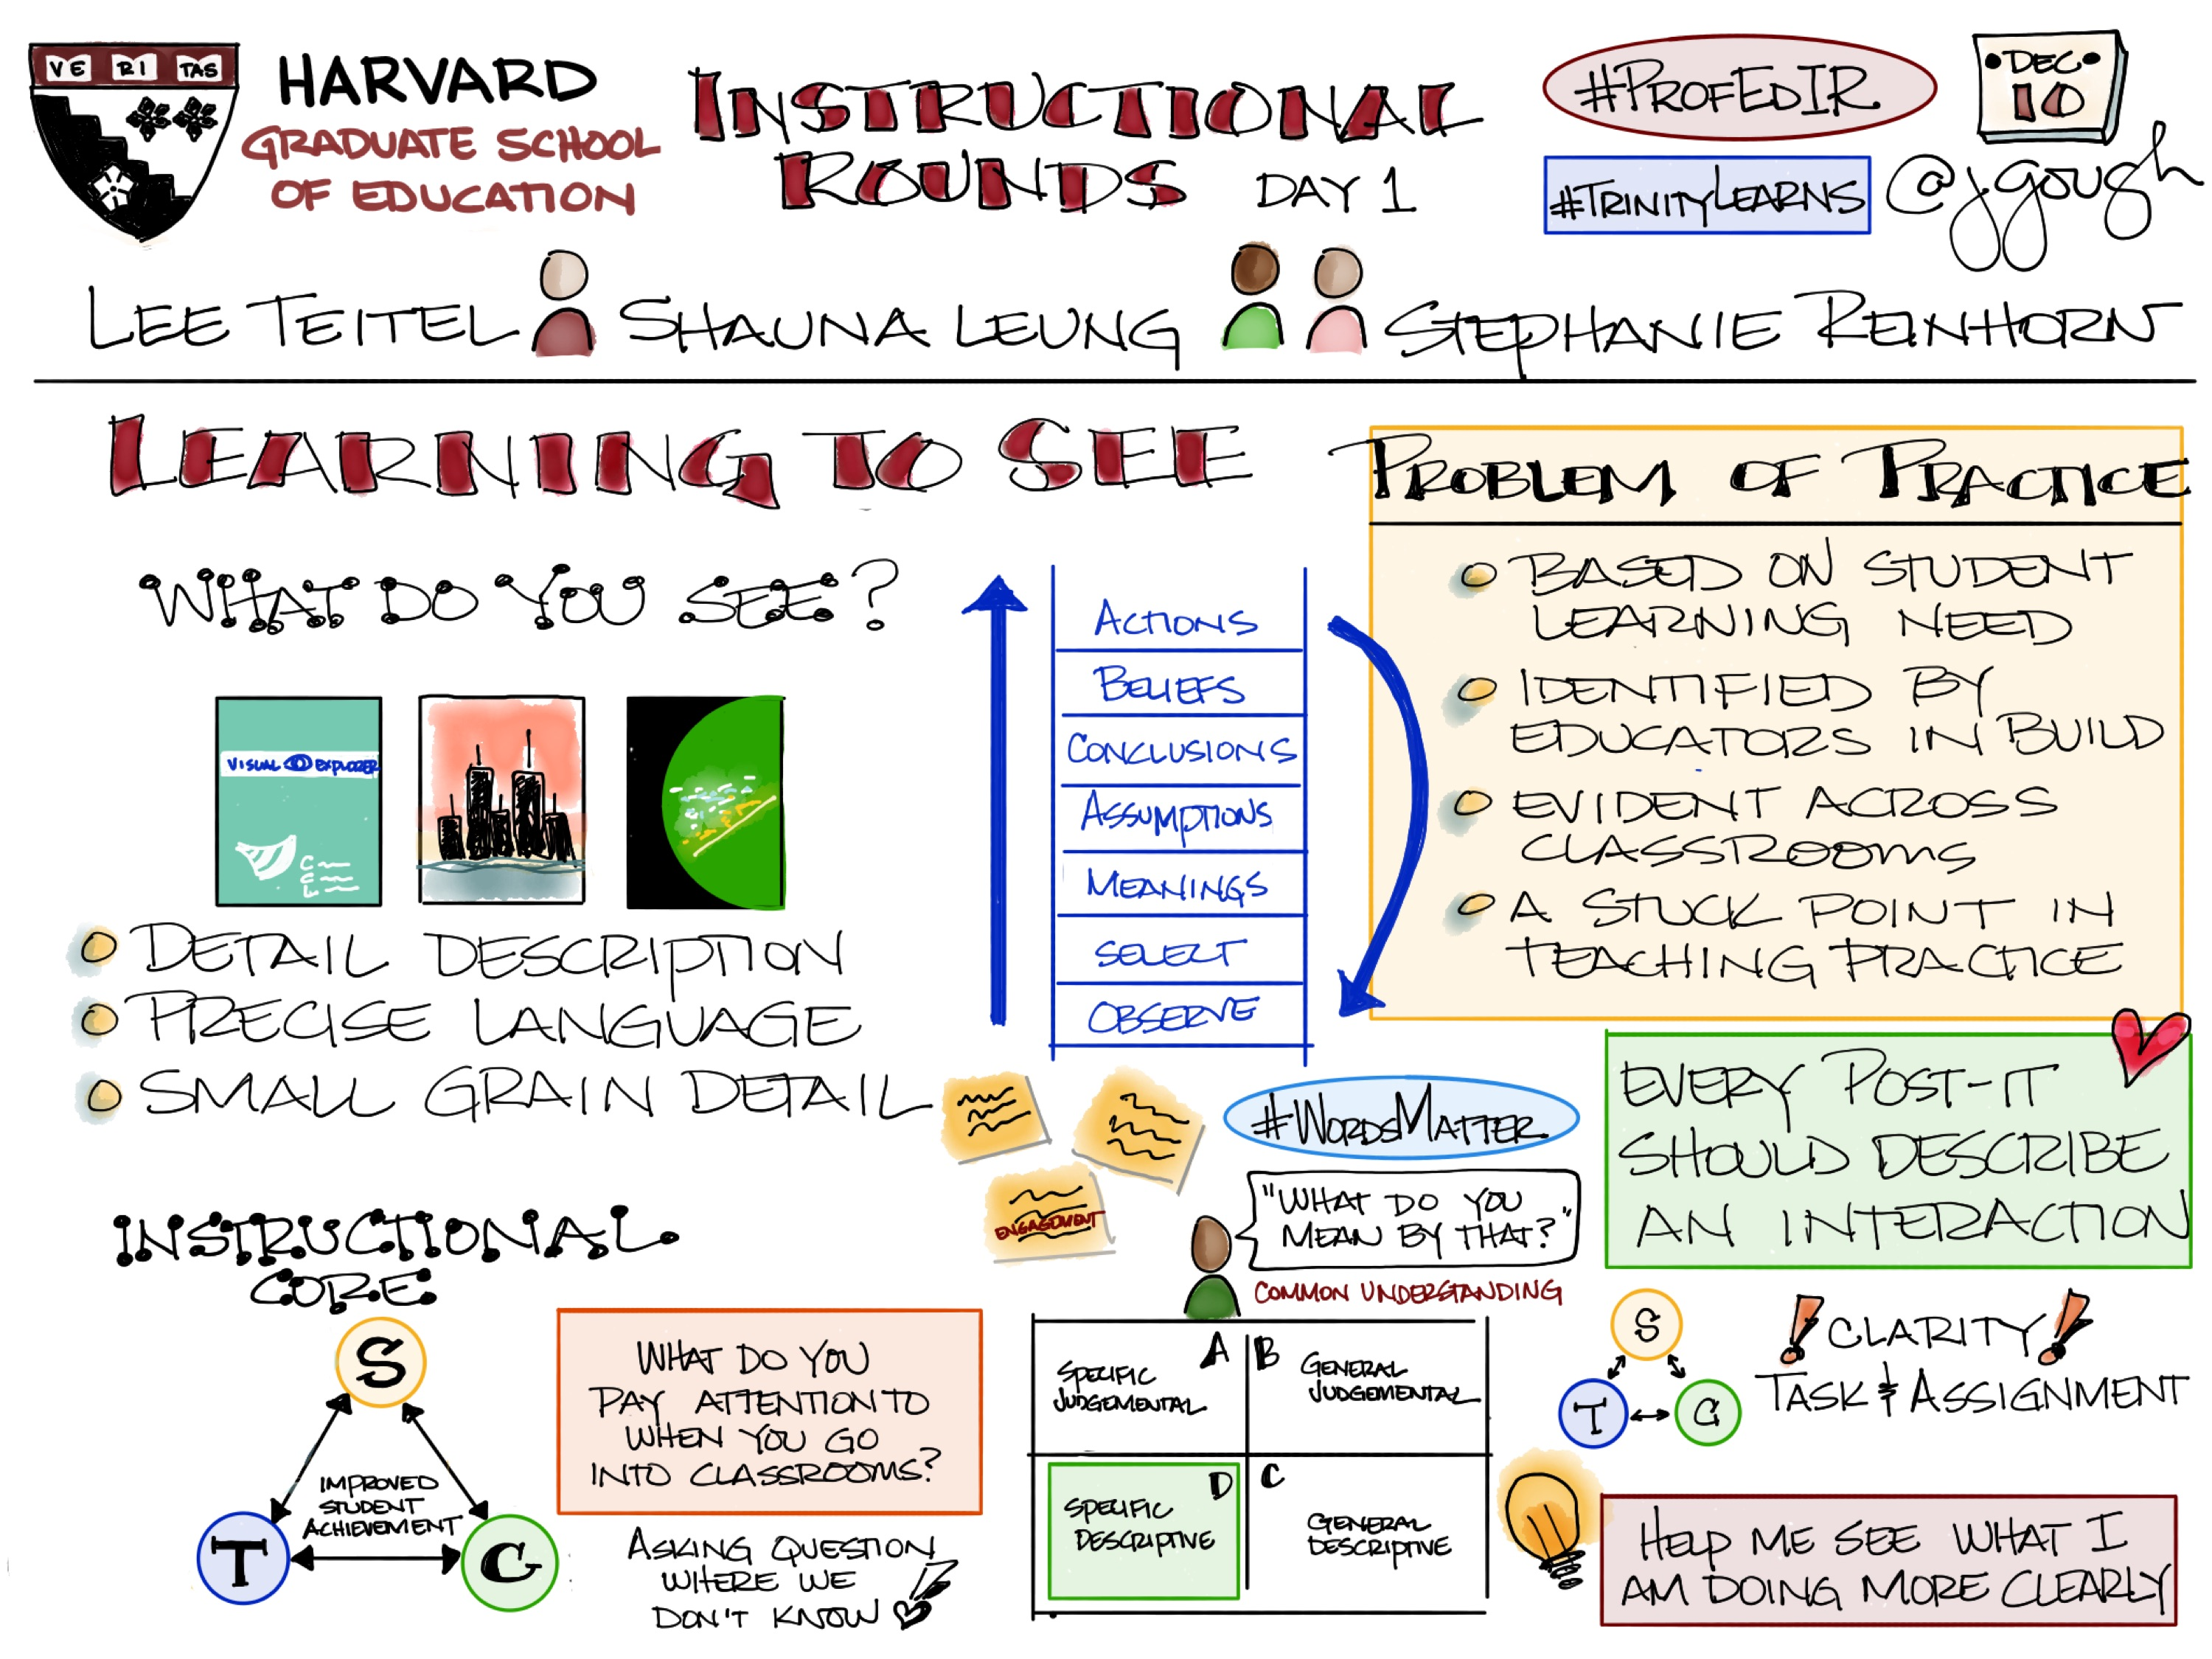 Sharing my #Sketchnotes from @ProfEdIR @HGSE Instructional Rounds: Learning to See (Day 1) #TrinityLearns